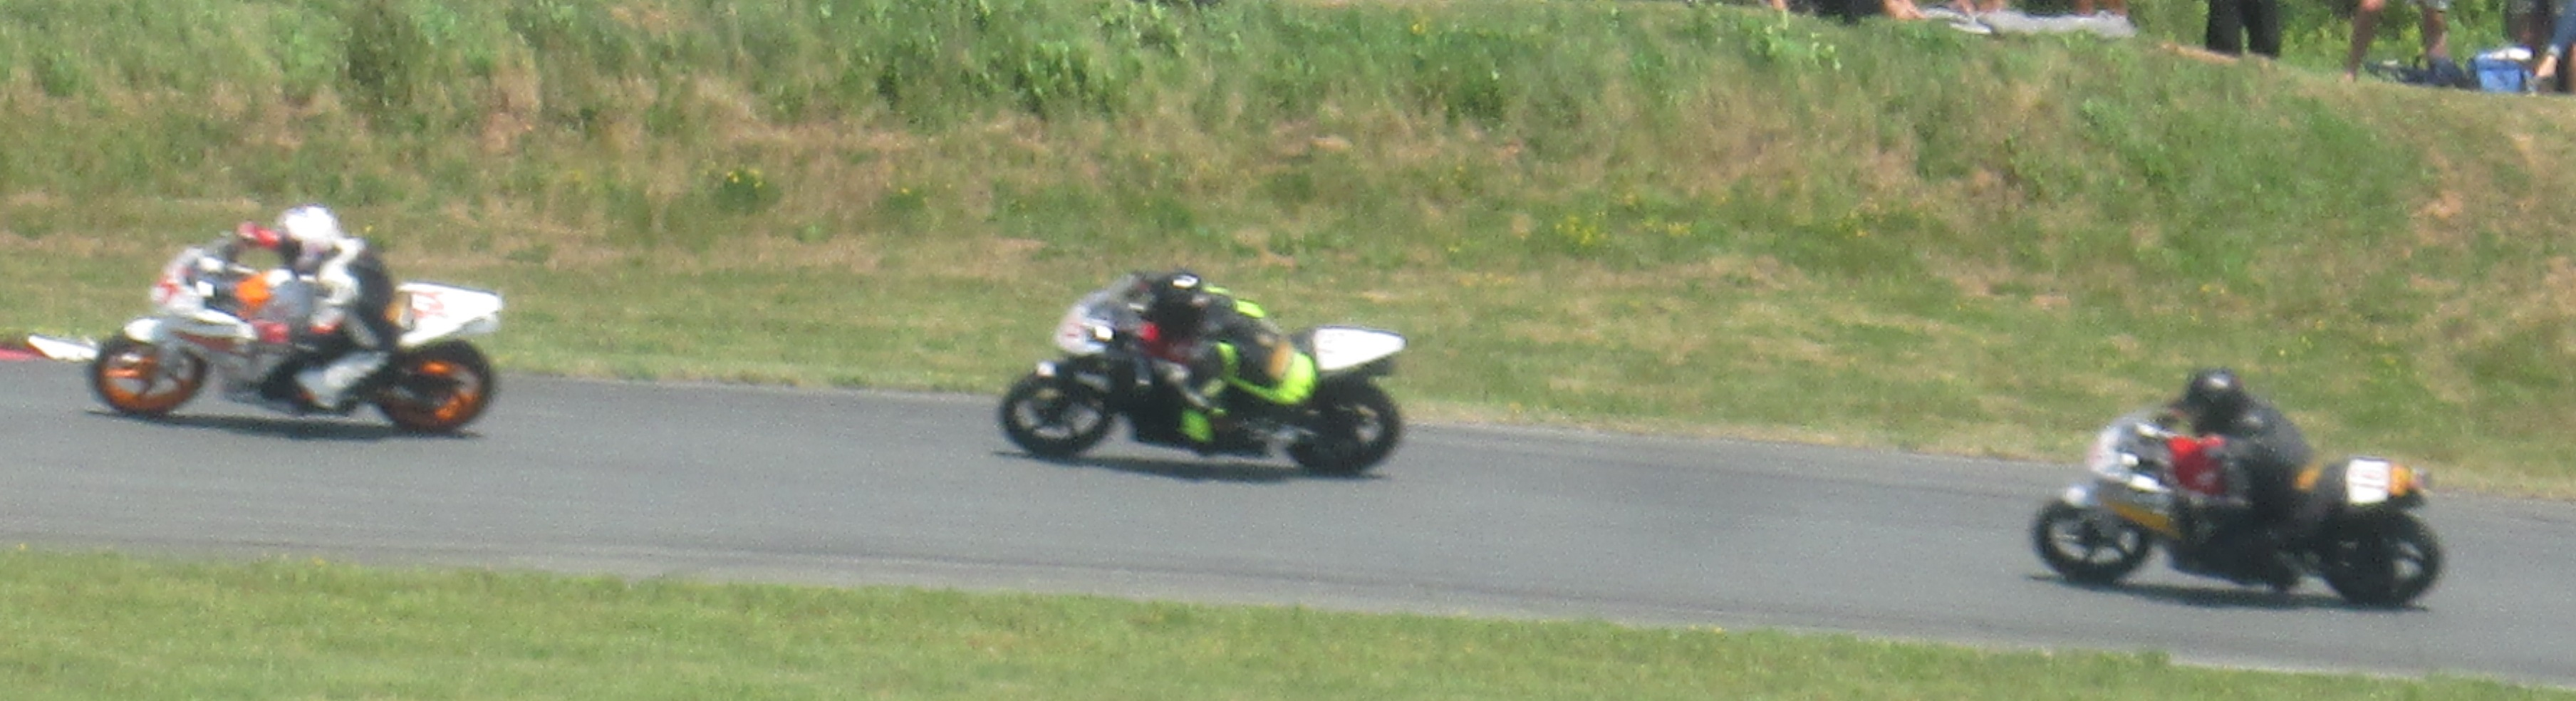 Superbikes 2014 picture number 35